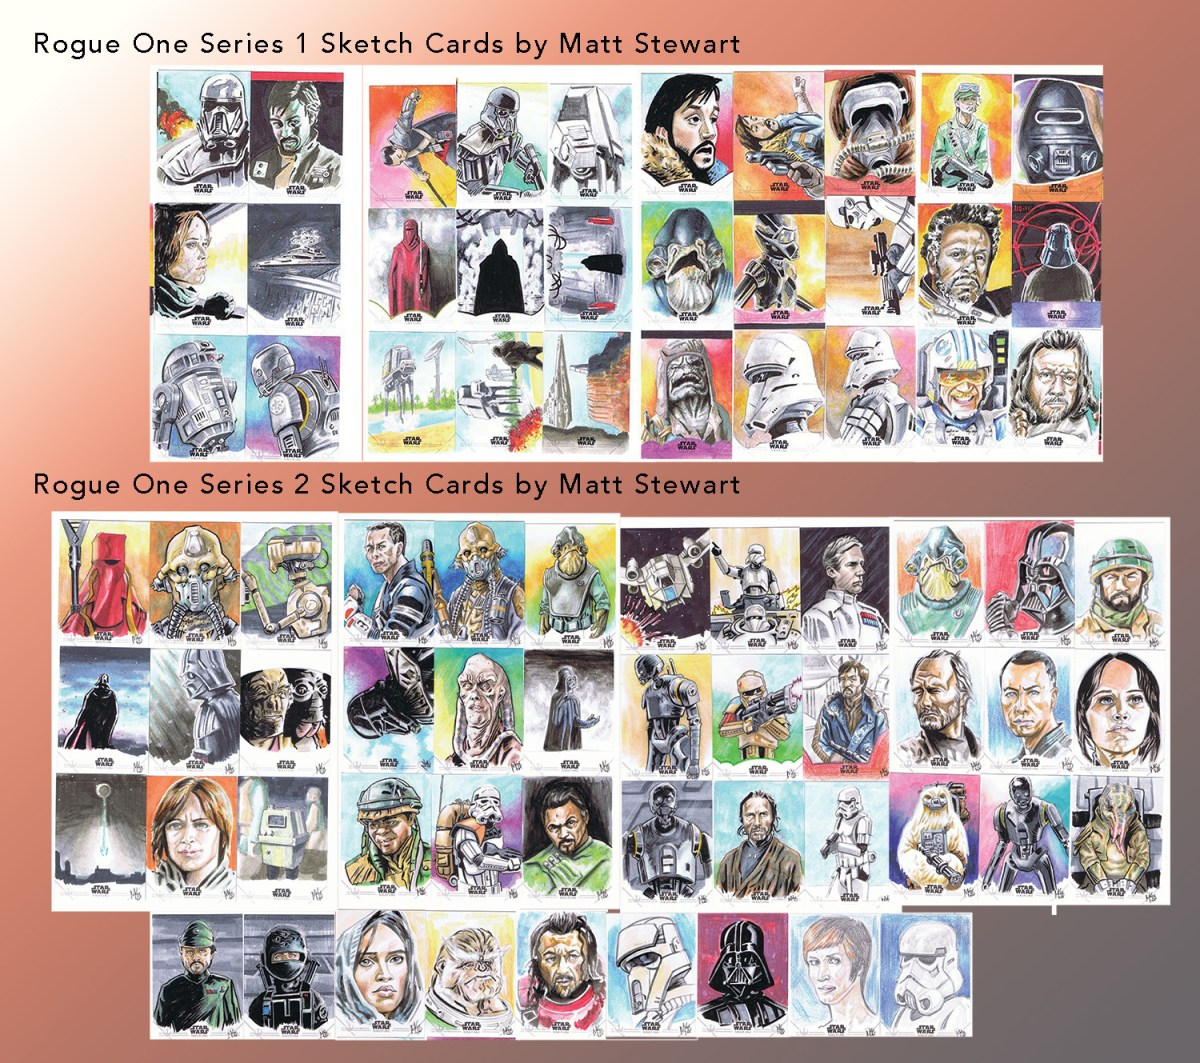 All of my Topps Rogue One Sketch Cards